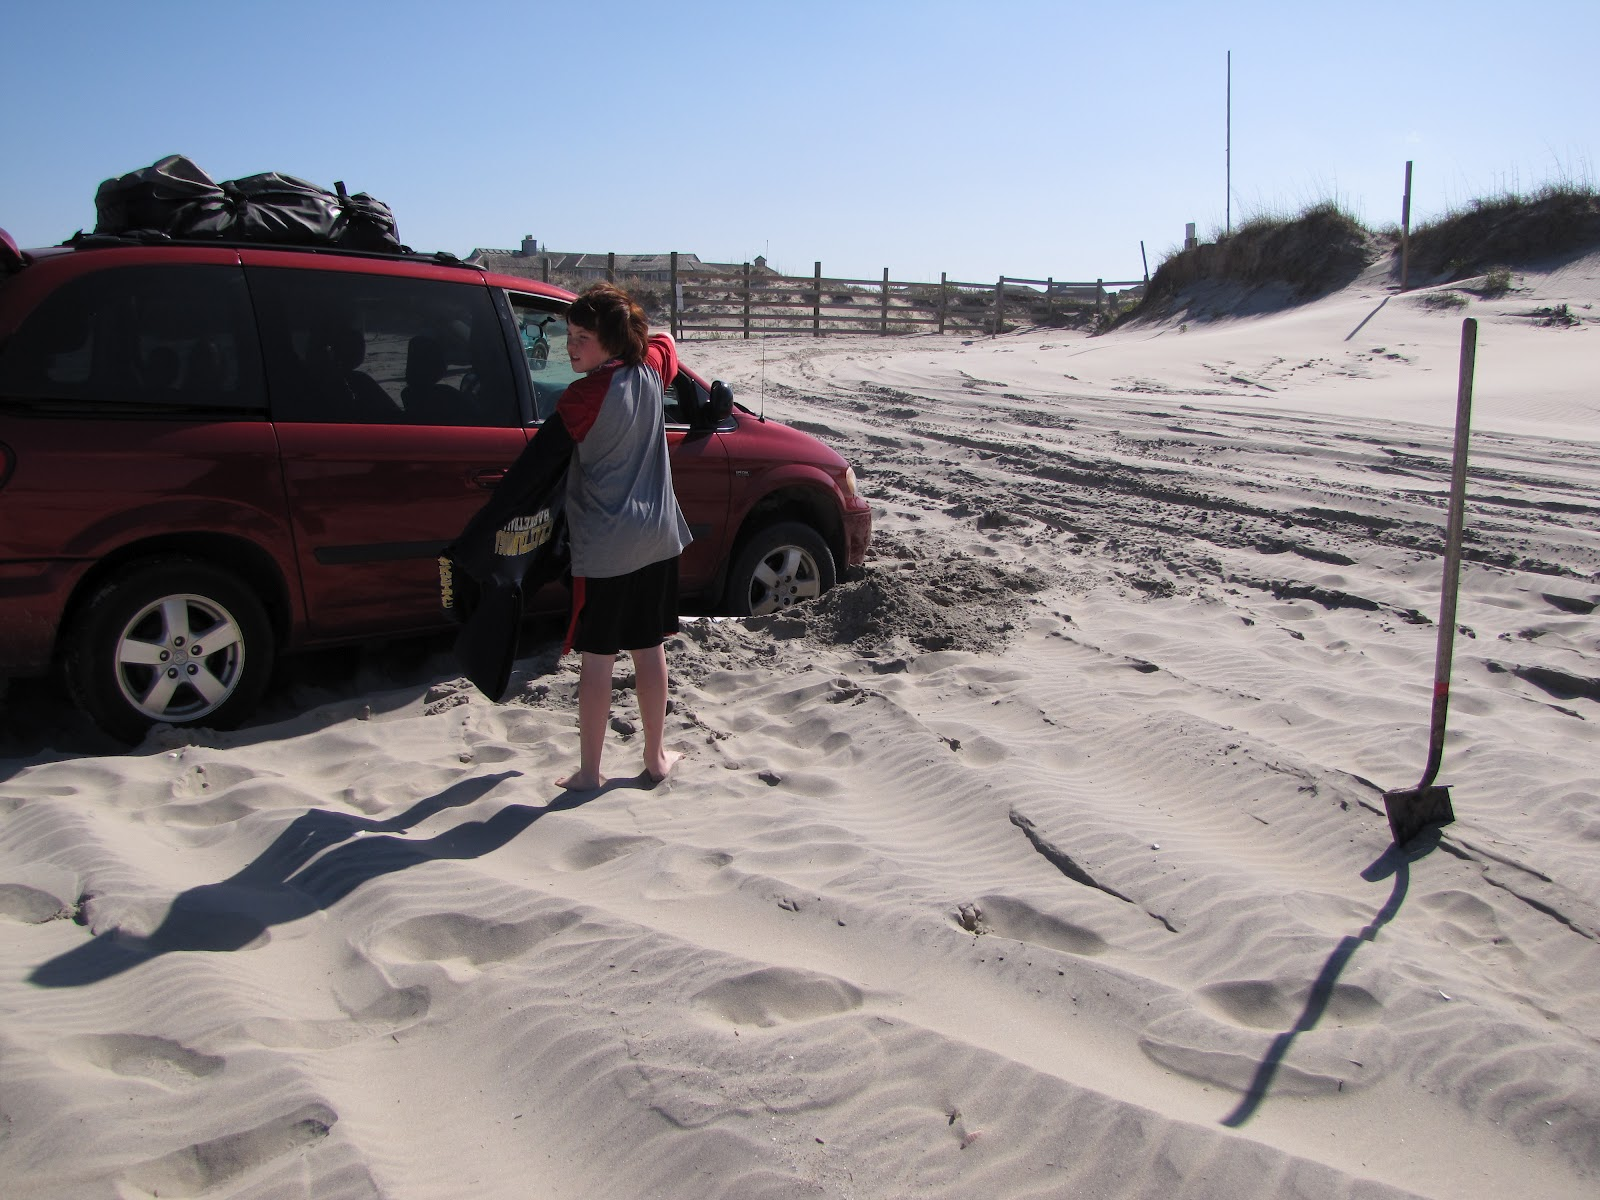 contentment acres tips for driving on the beach in obx and corolla. Black Bedroom Furniture Sets. Home Design Ideas